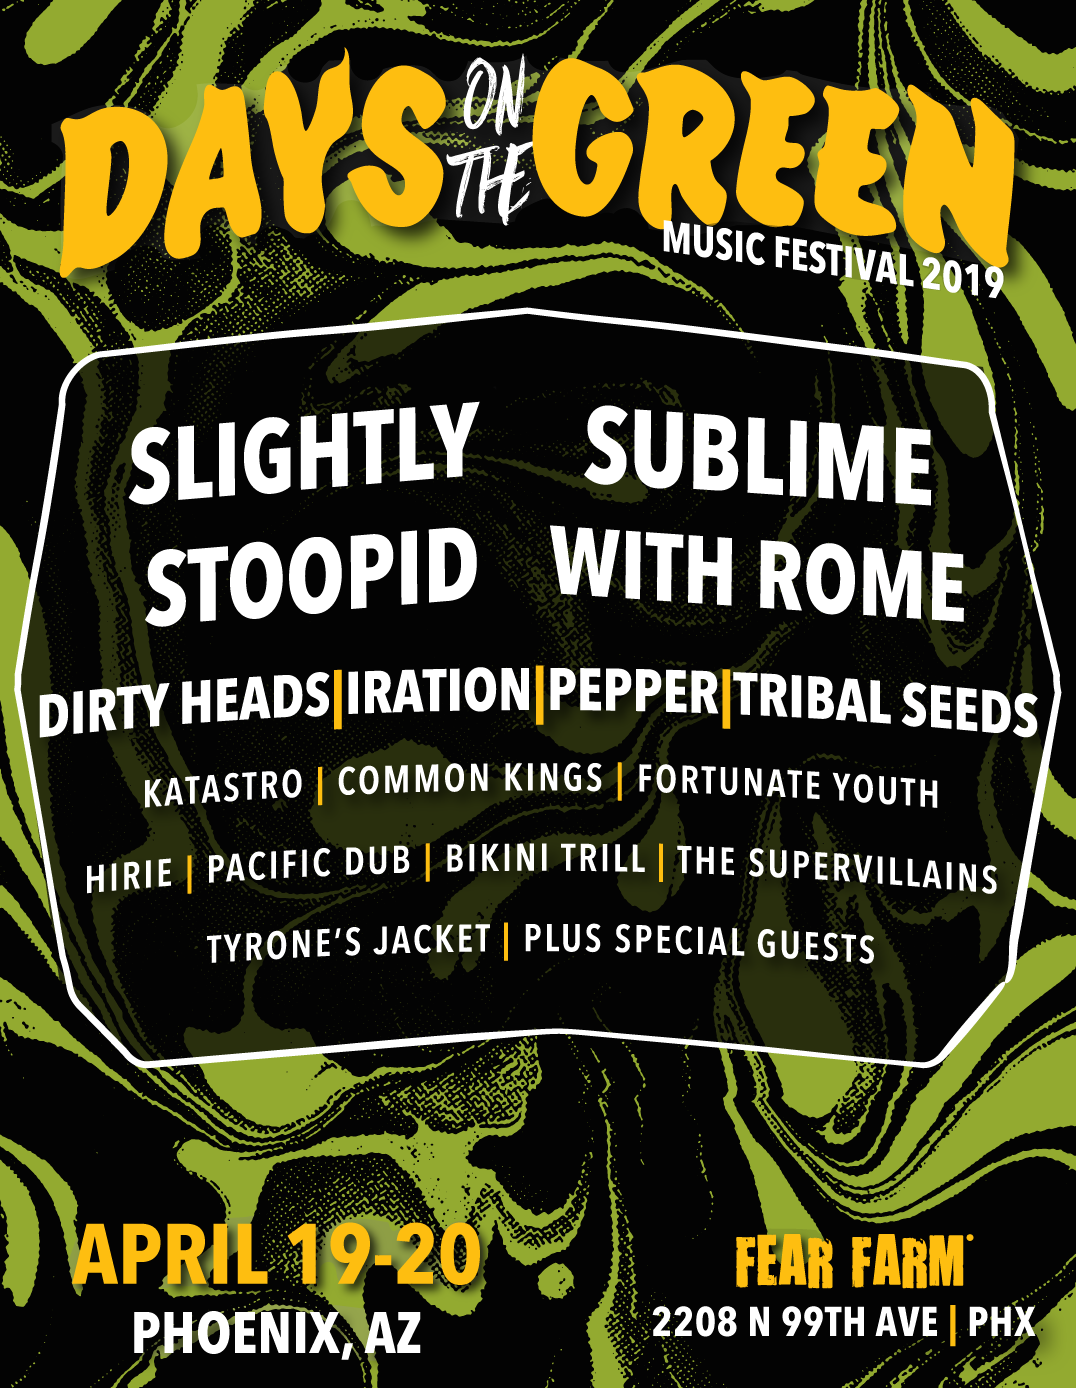 daysonthegreen